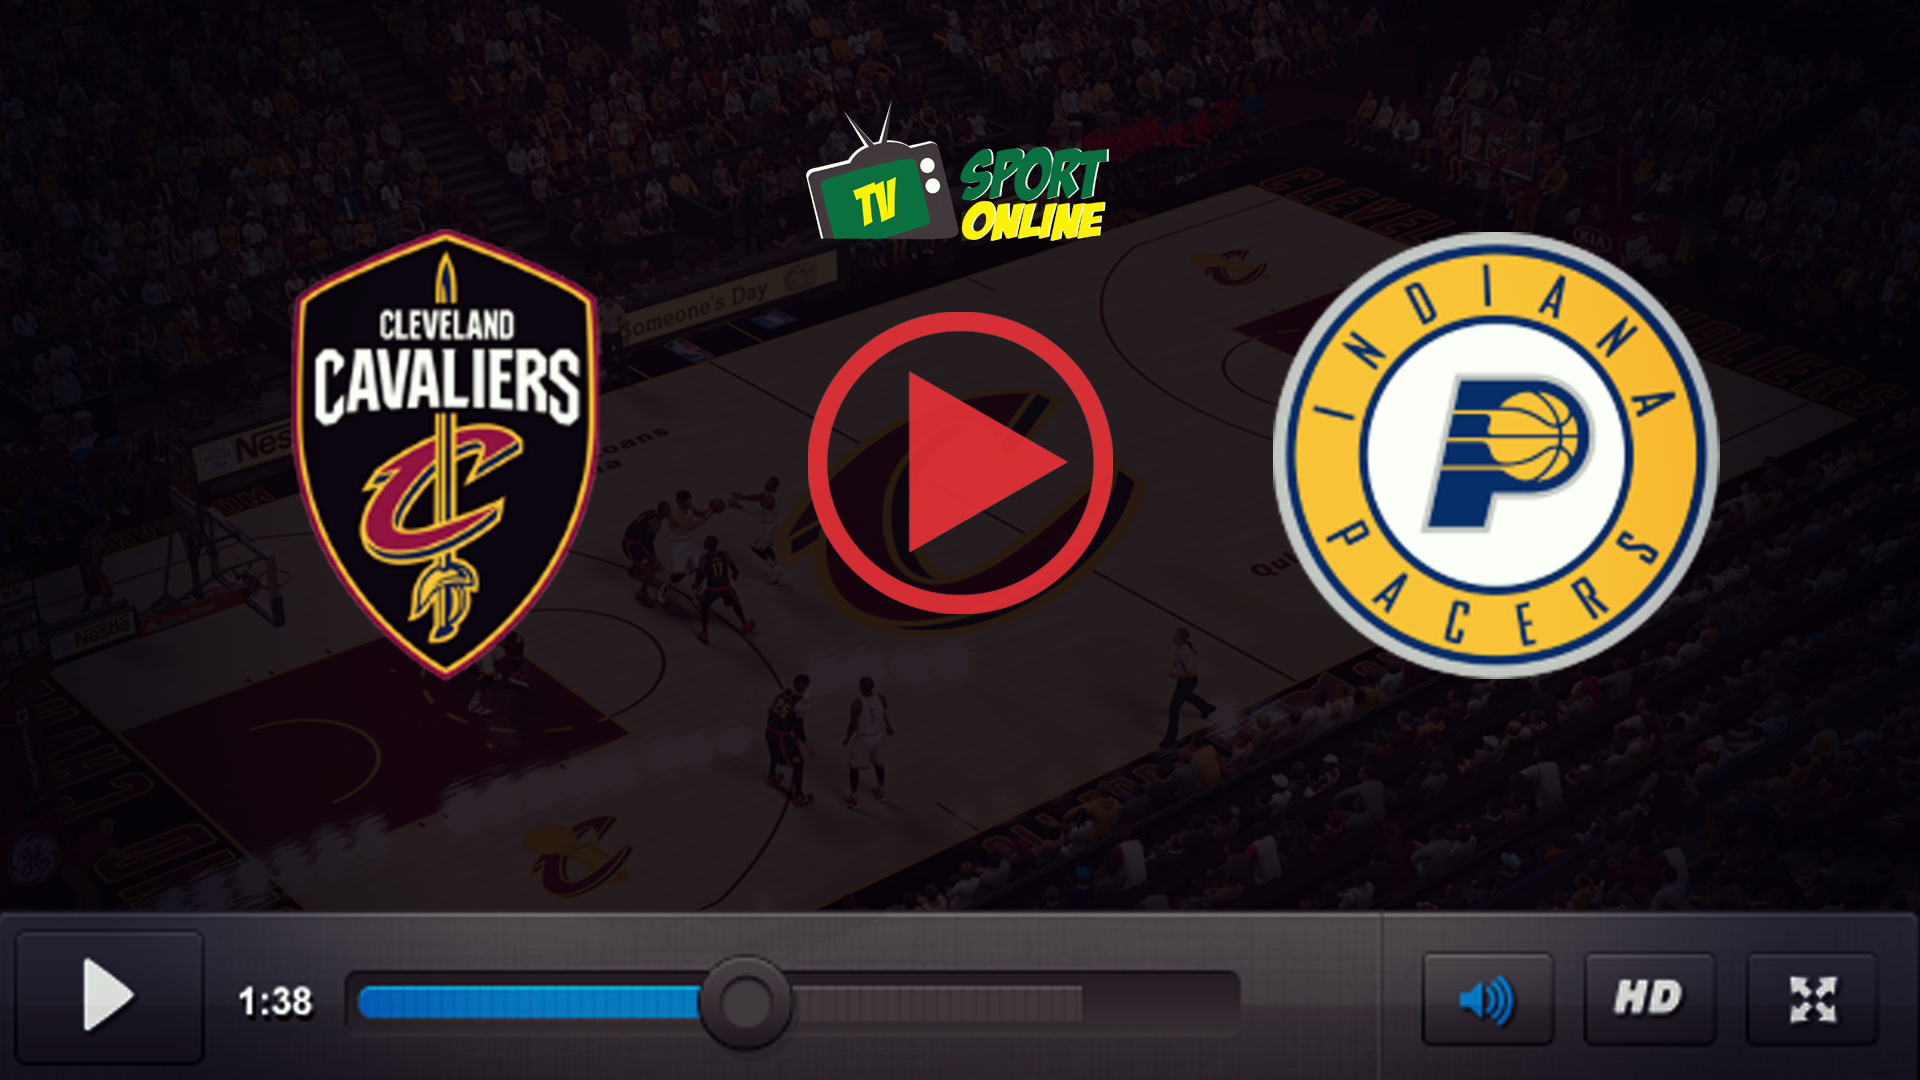 Watch Live Stream Cleveland Cavaliers – Indiana Pacers